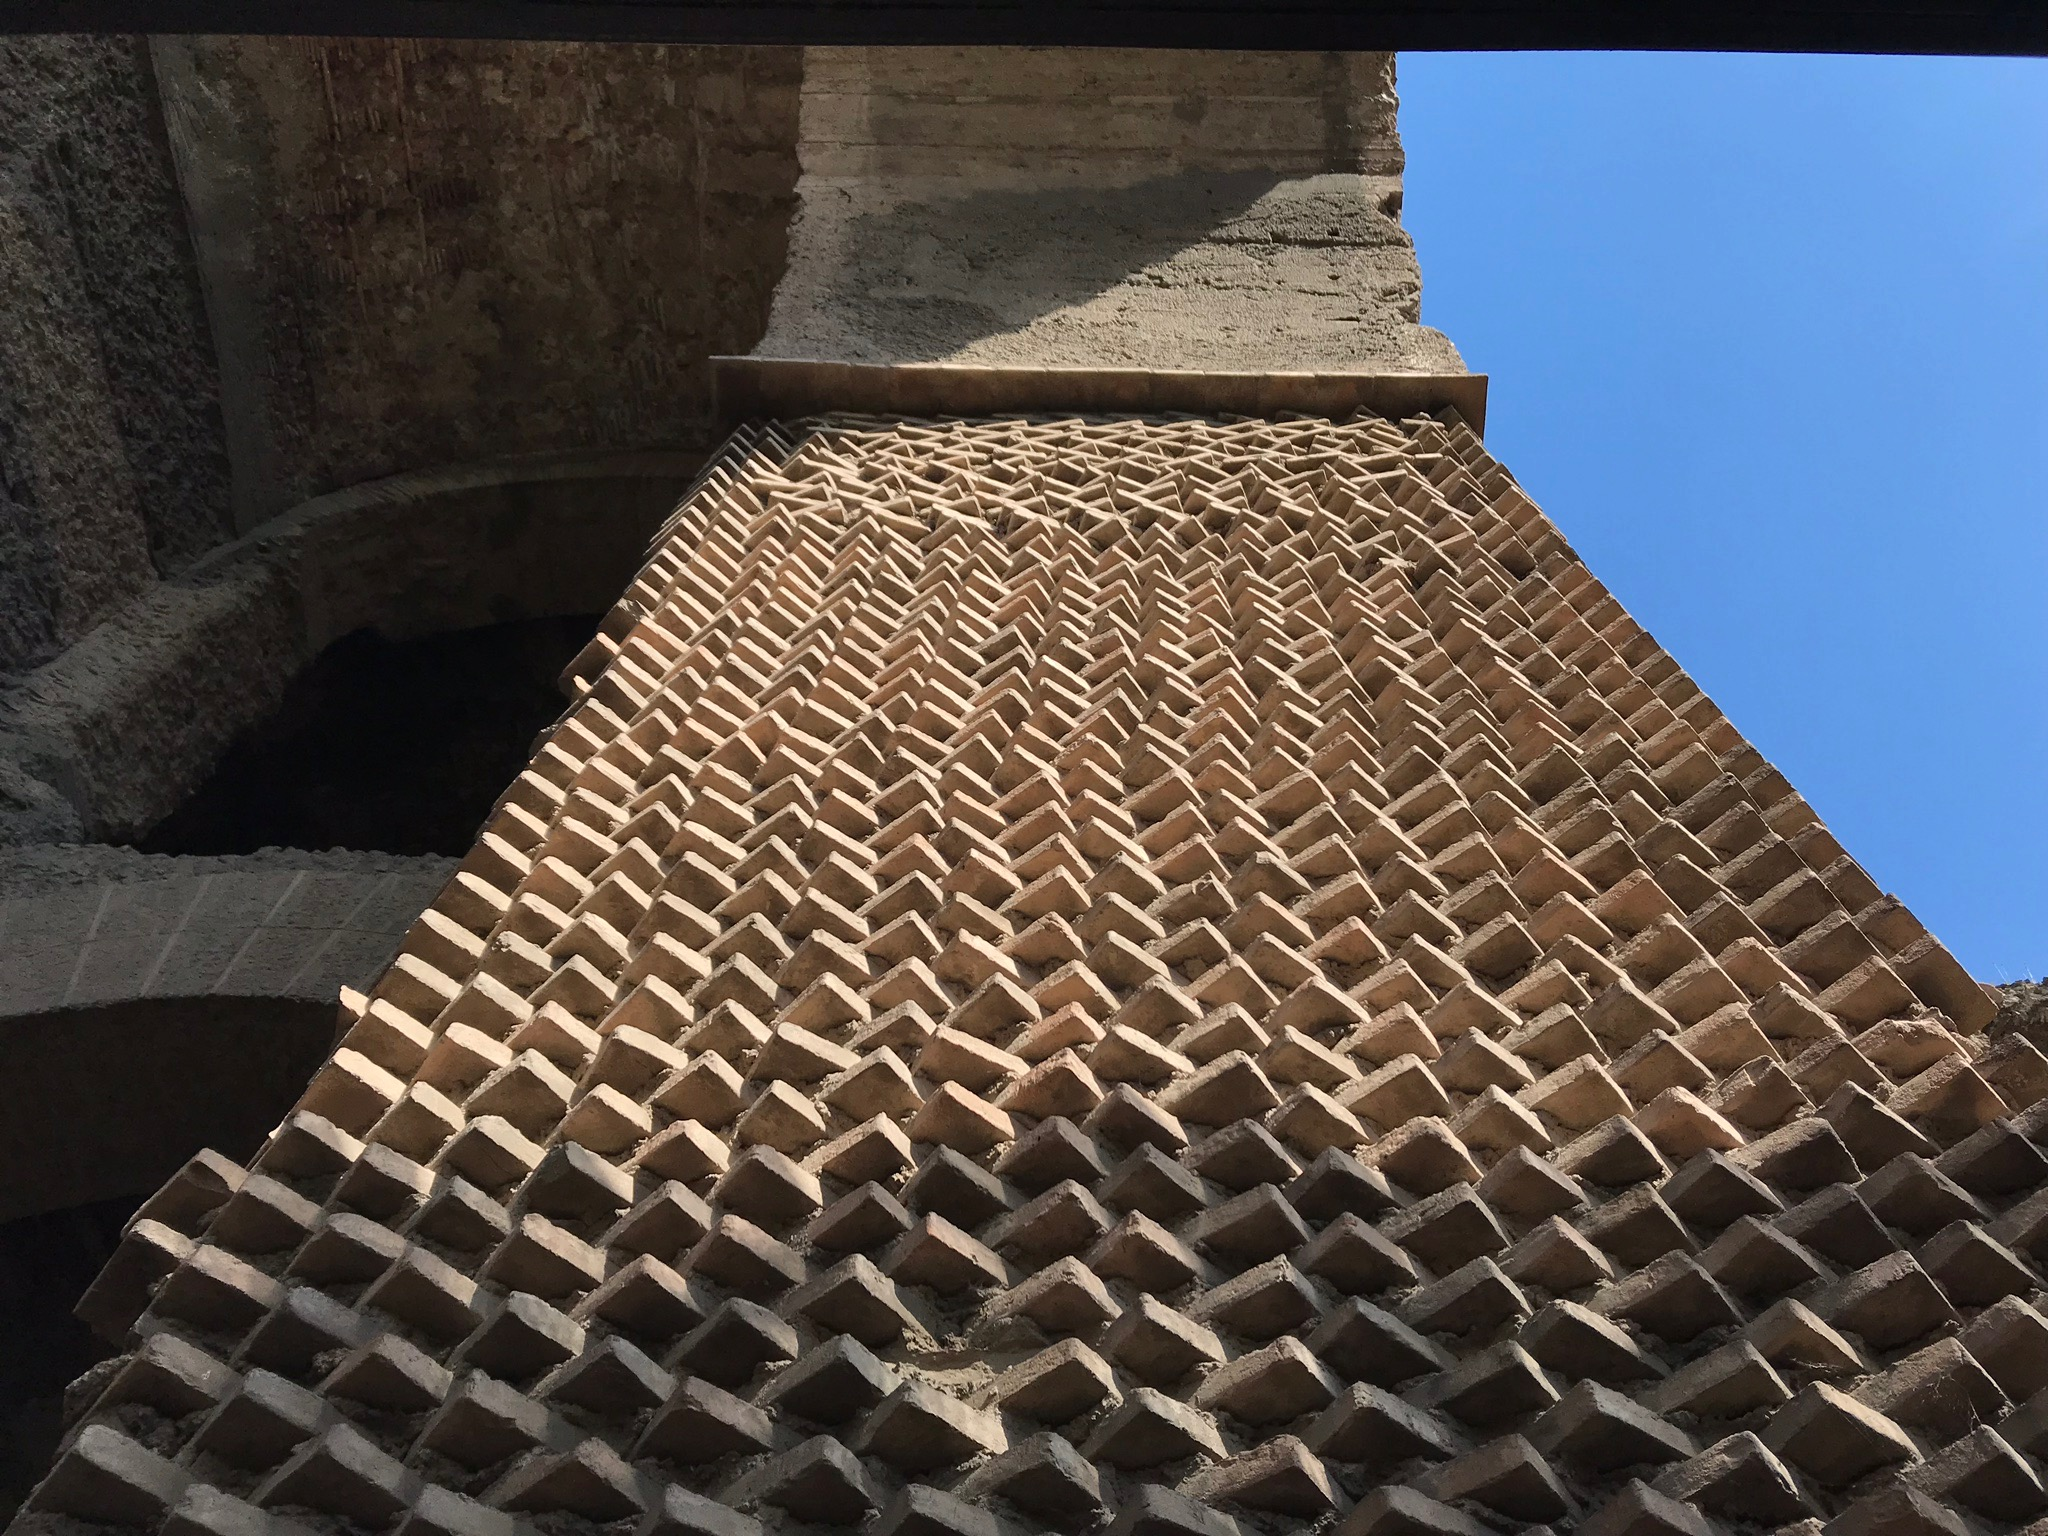 Brick pattern on a structure in the Roman Forum